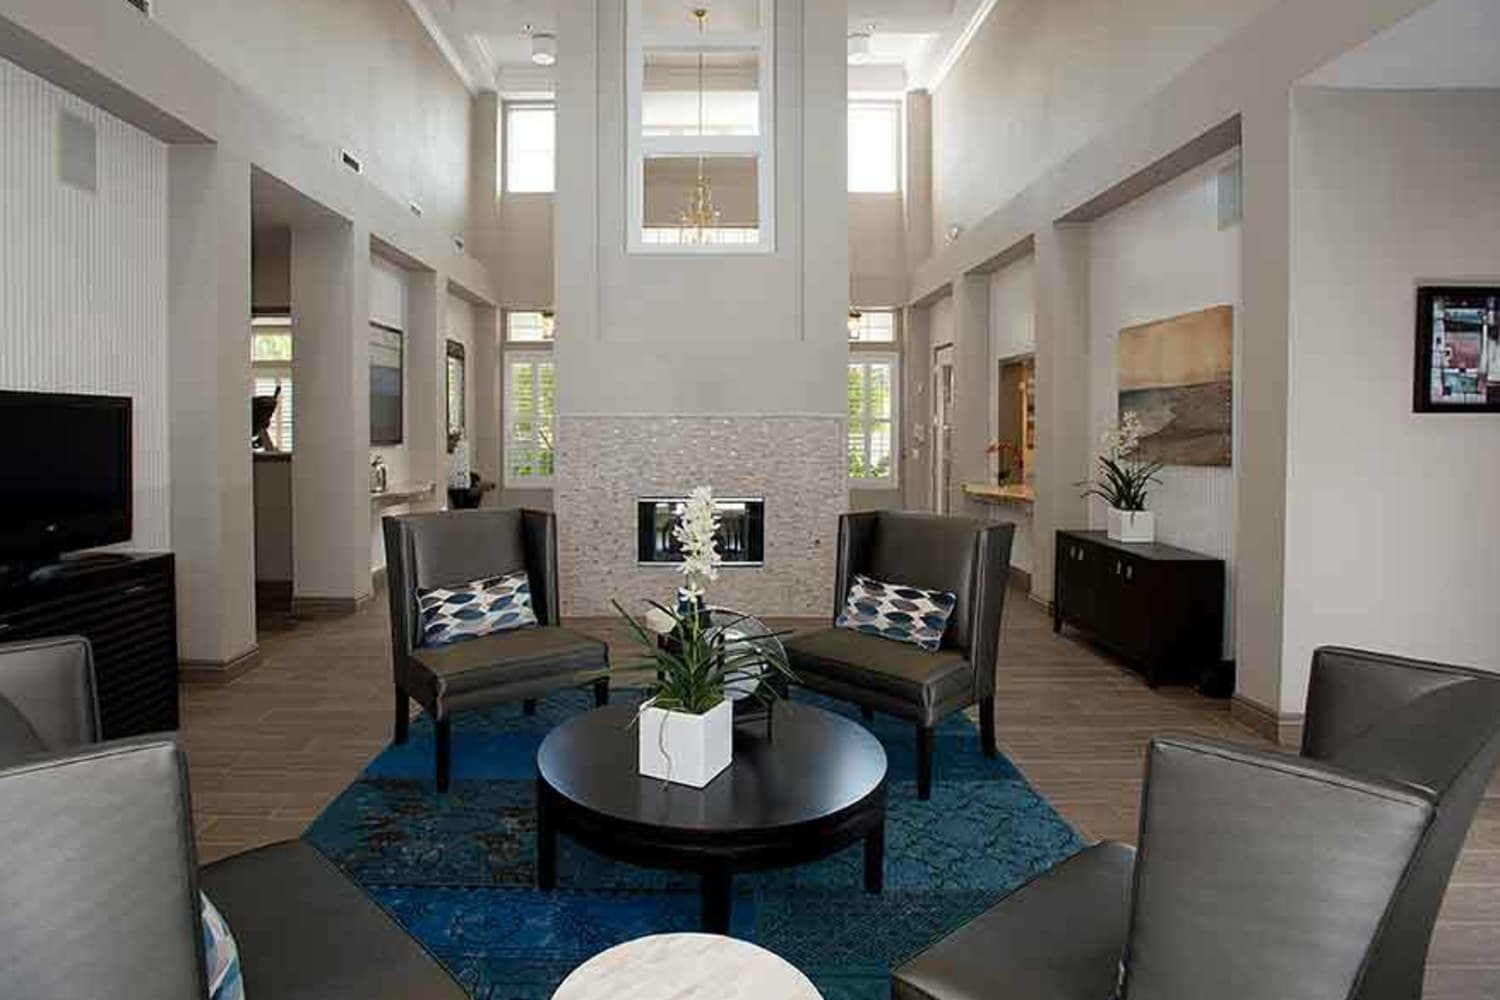 Lobby at Nantucket Apartments in Santa Clara, California